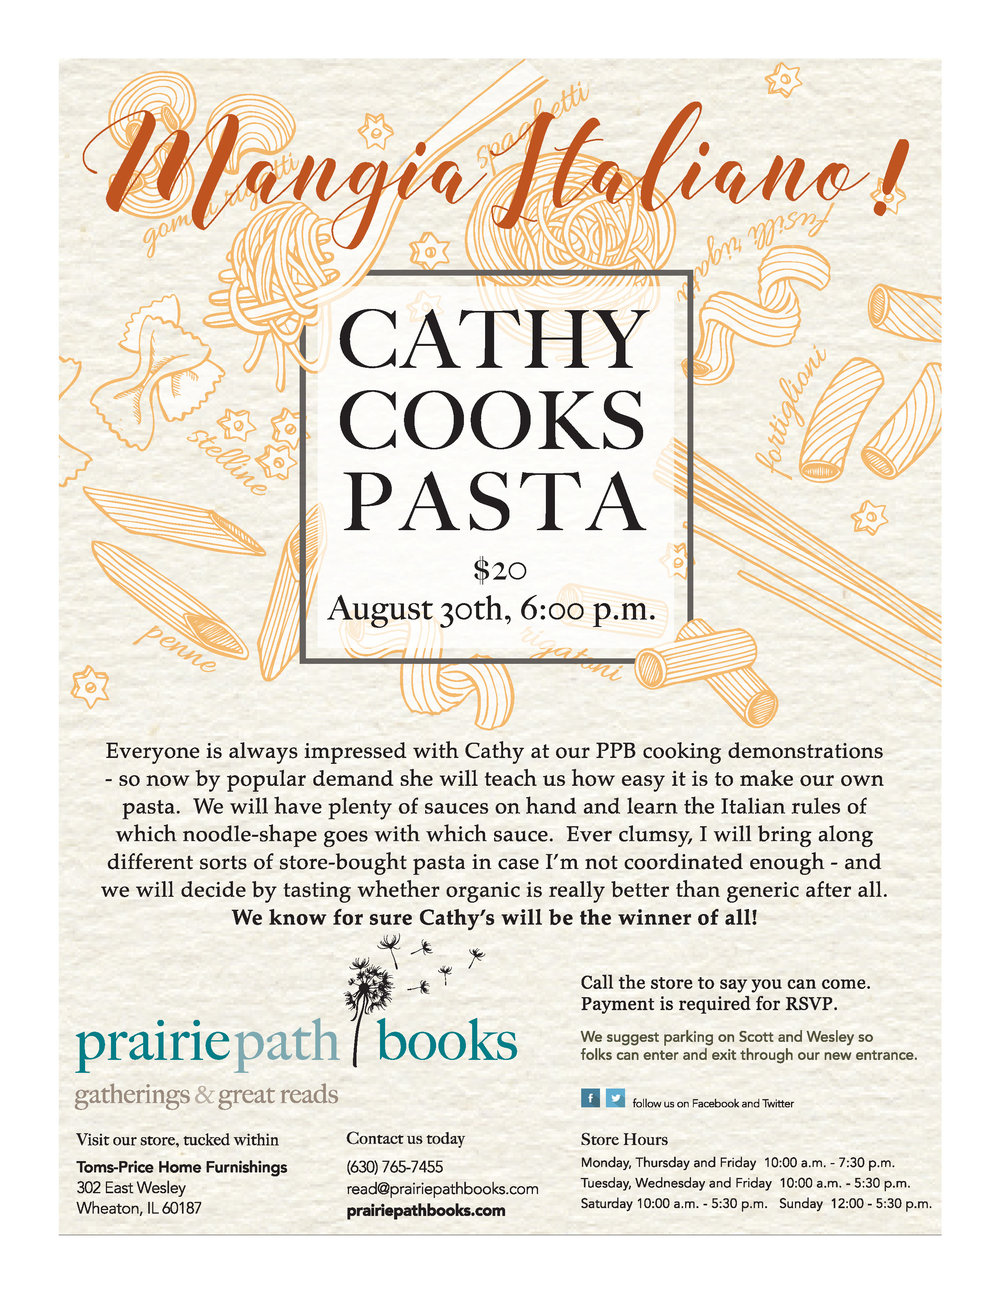 CathyCooksPasta_August30.jpg